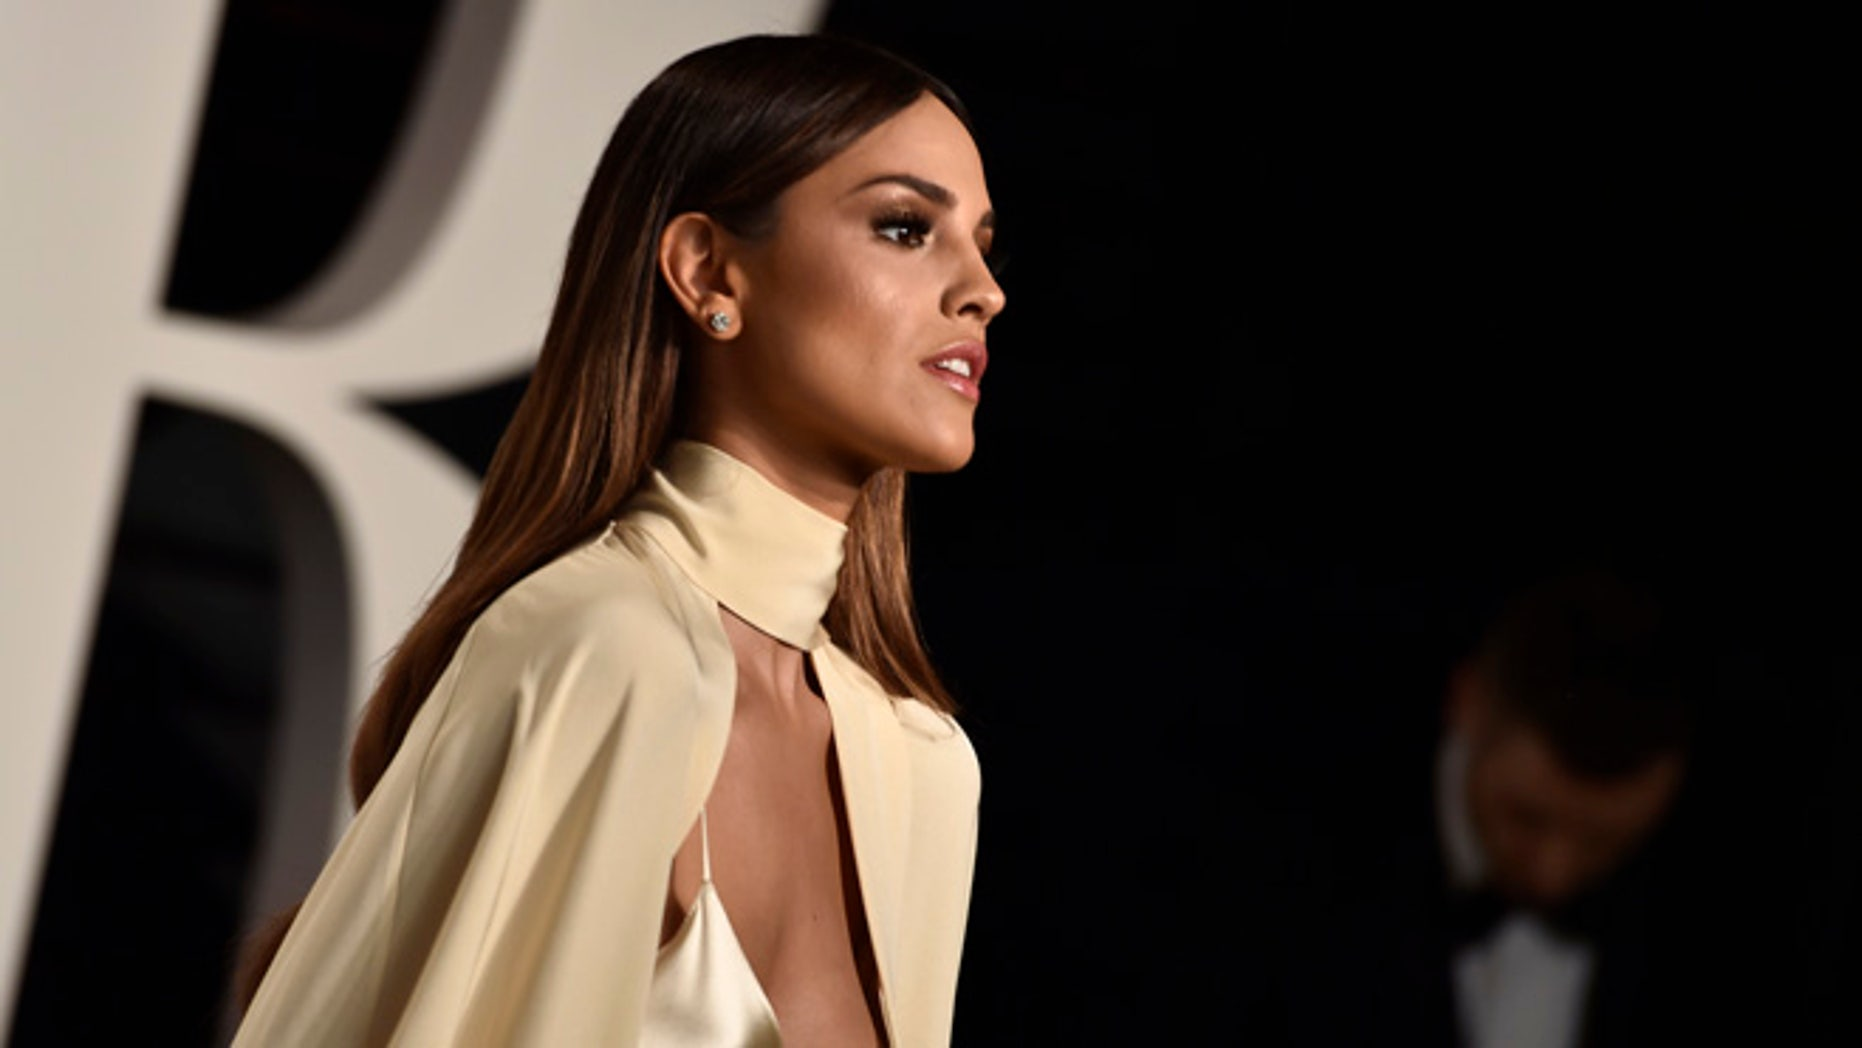 Eiza Gonzalez attends the 2016 Vanity Fair Oscar Party on Feb. 28, 2016 in Beverly Hills, California.